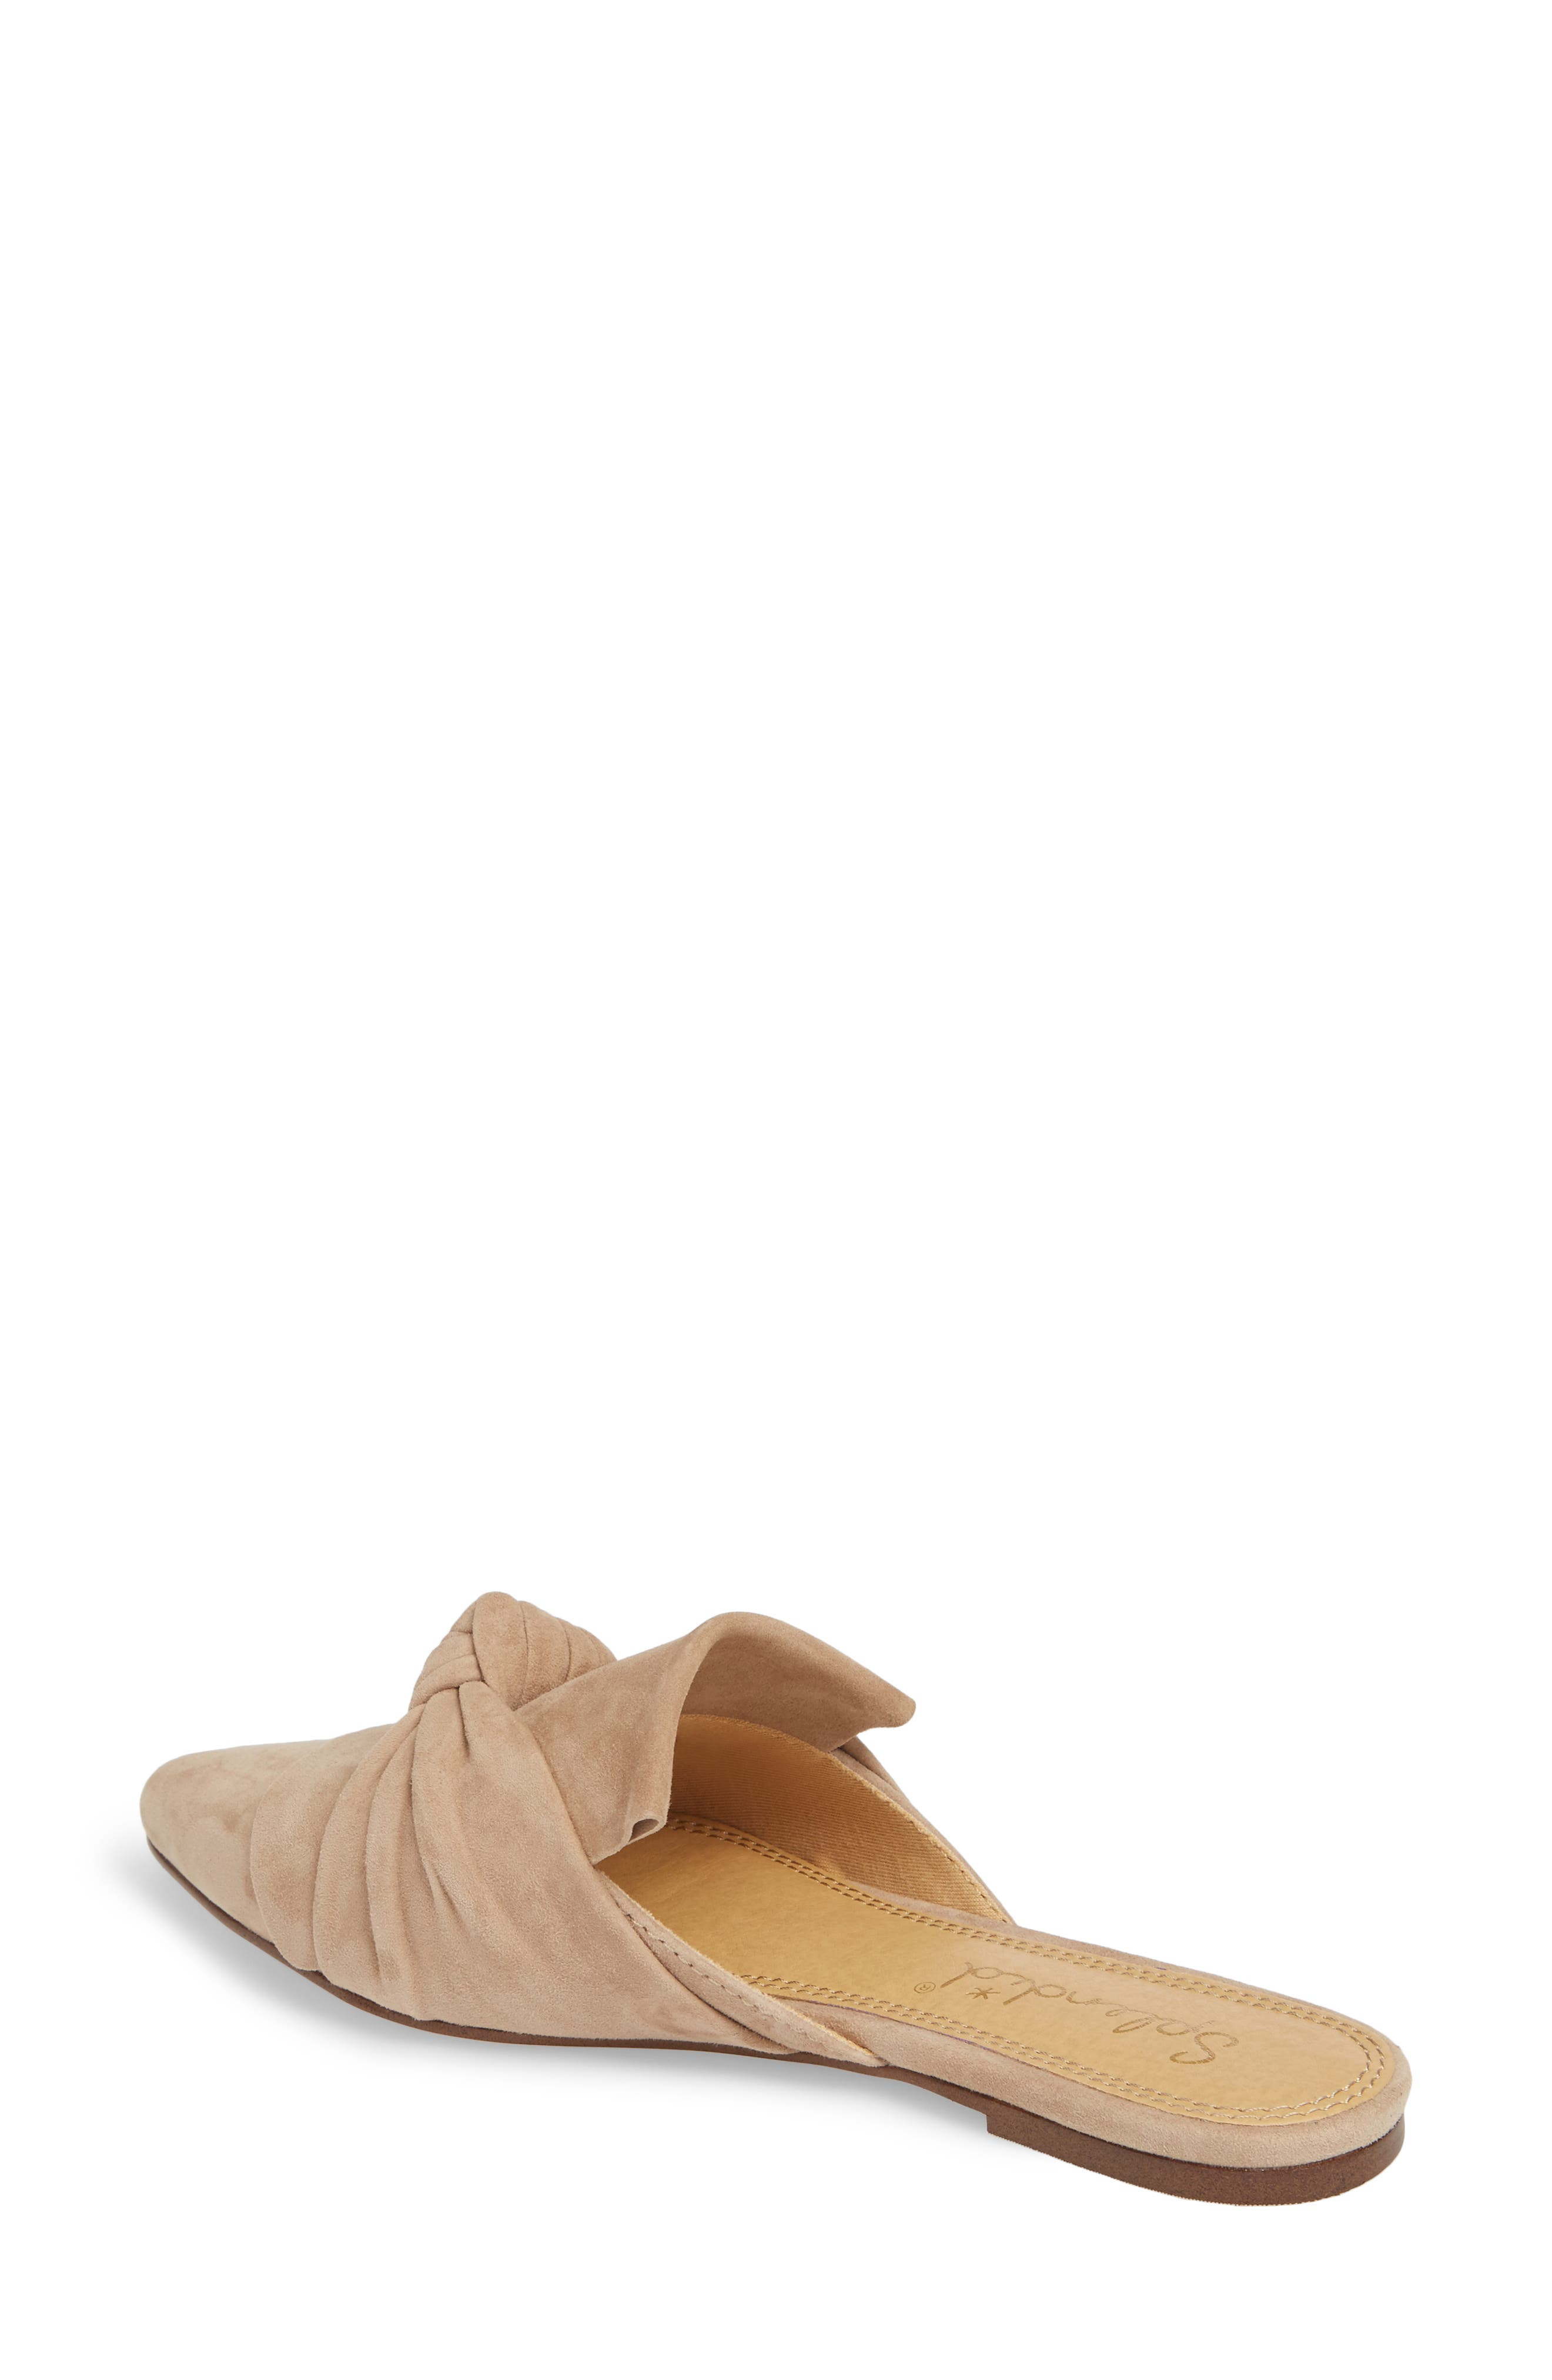 Bassett Knotted Pointy Toe Mule,                             Alternate thumbnail 5, color,